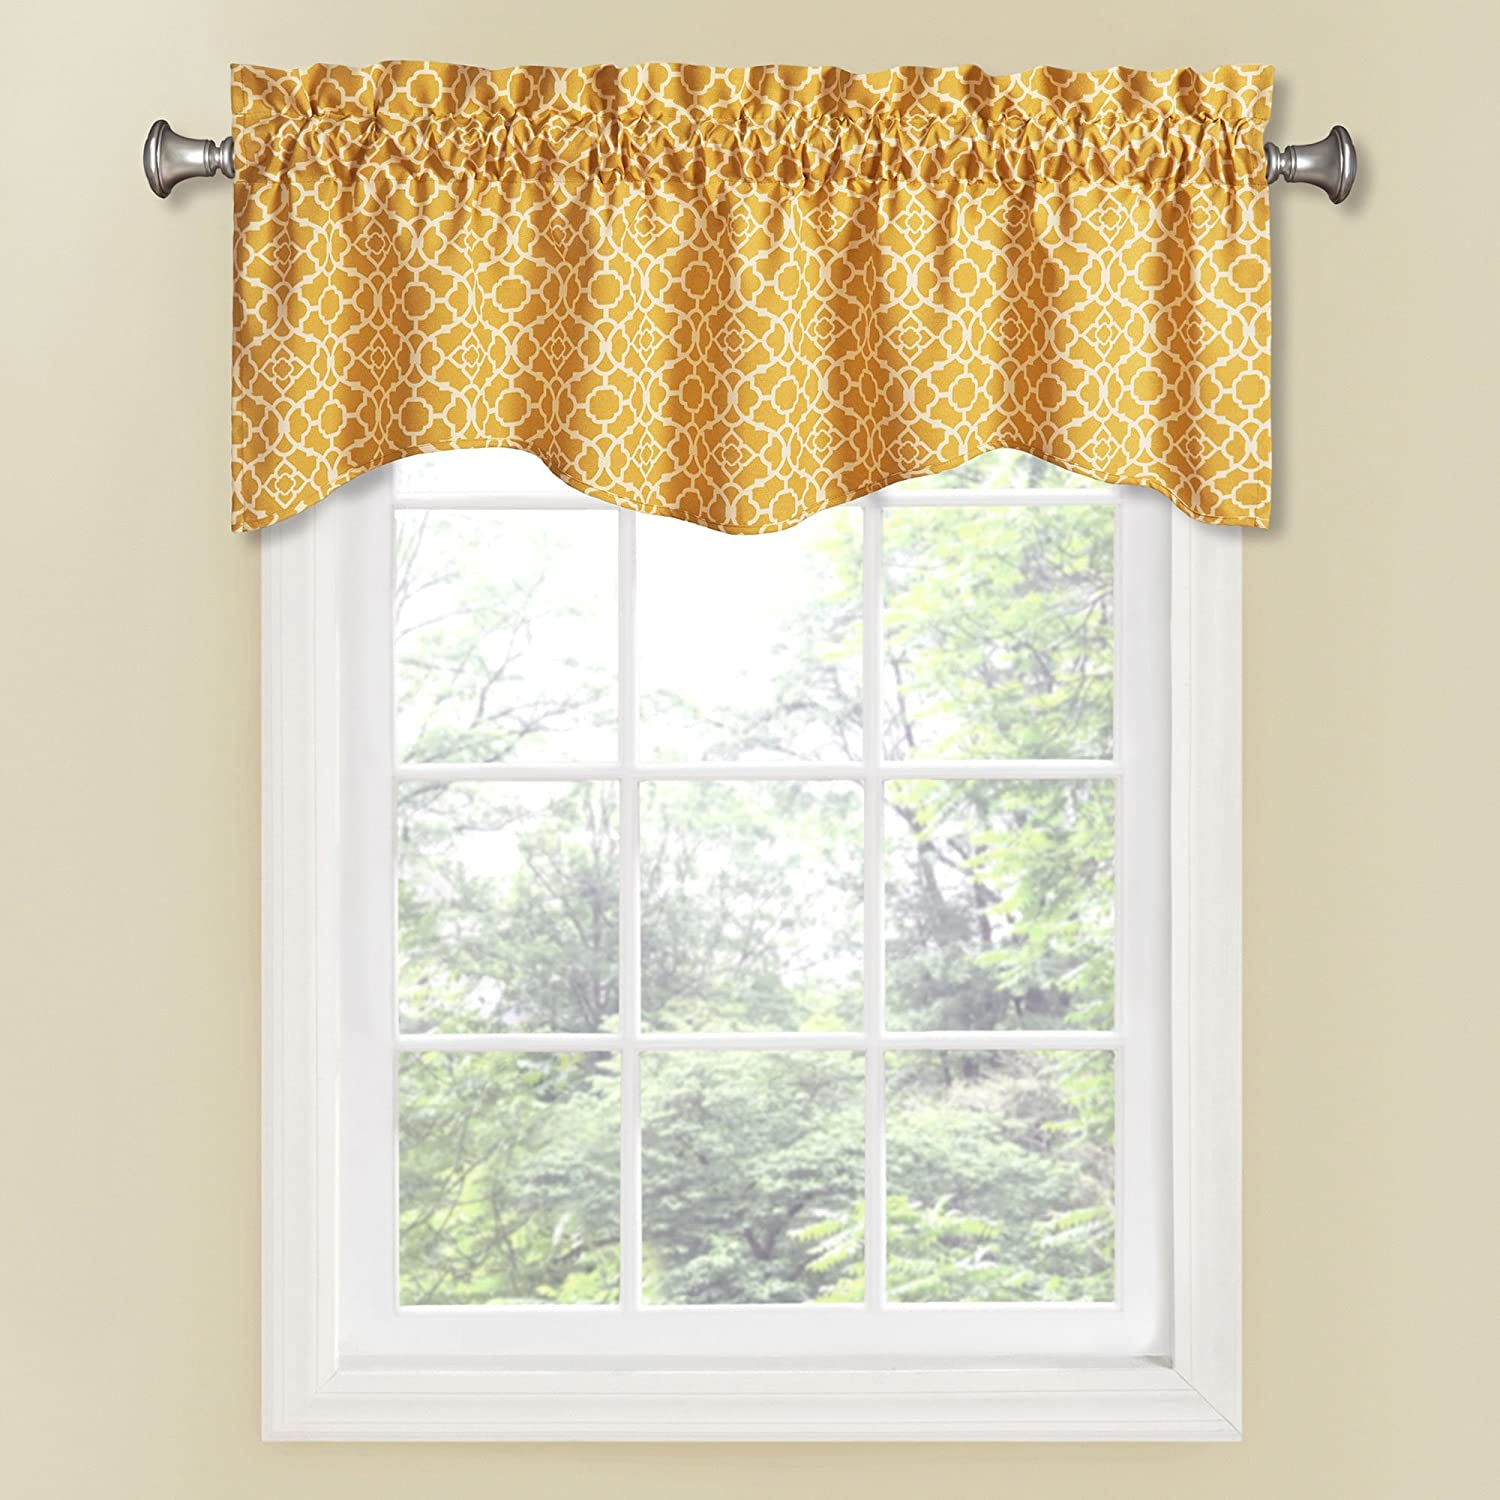 waverly balloon curtains and with curtain cover valance interior modern ikea toppers rods for valances bedrooms useful beautiful window